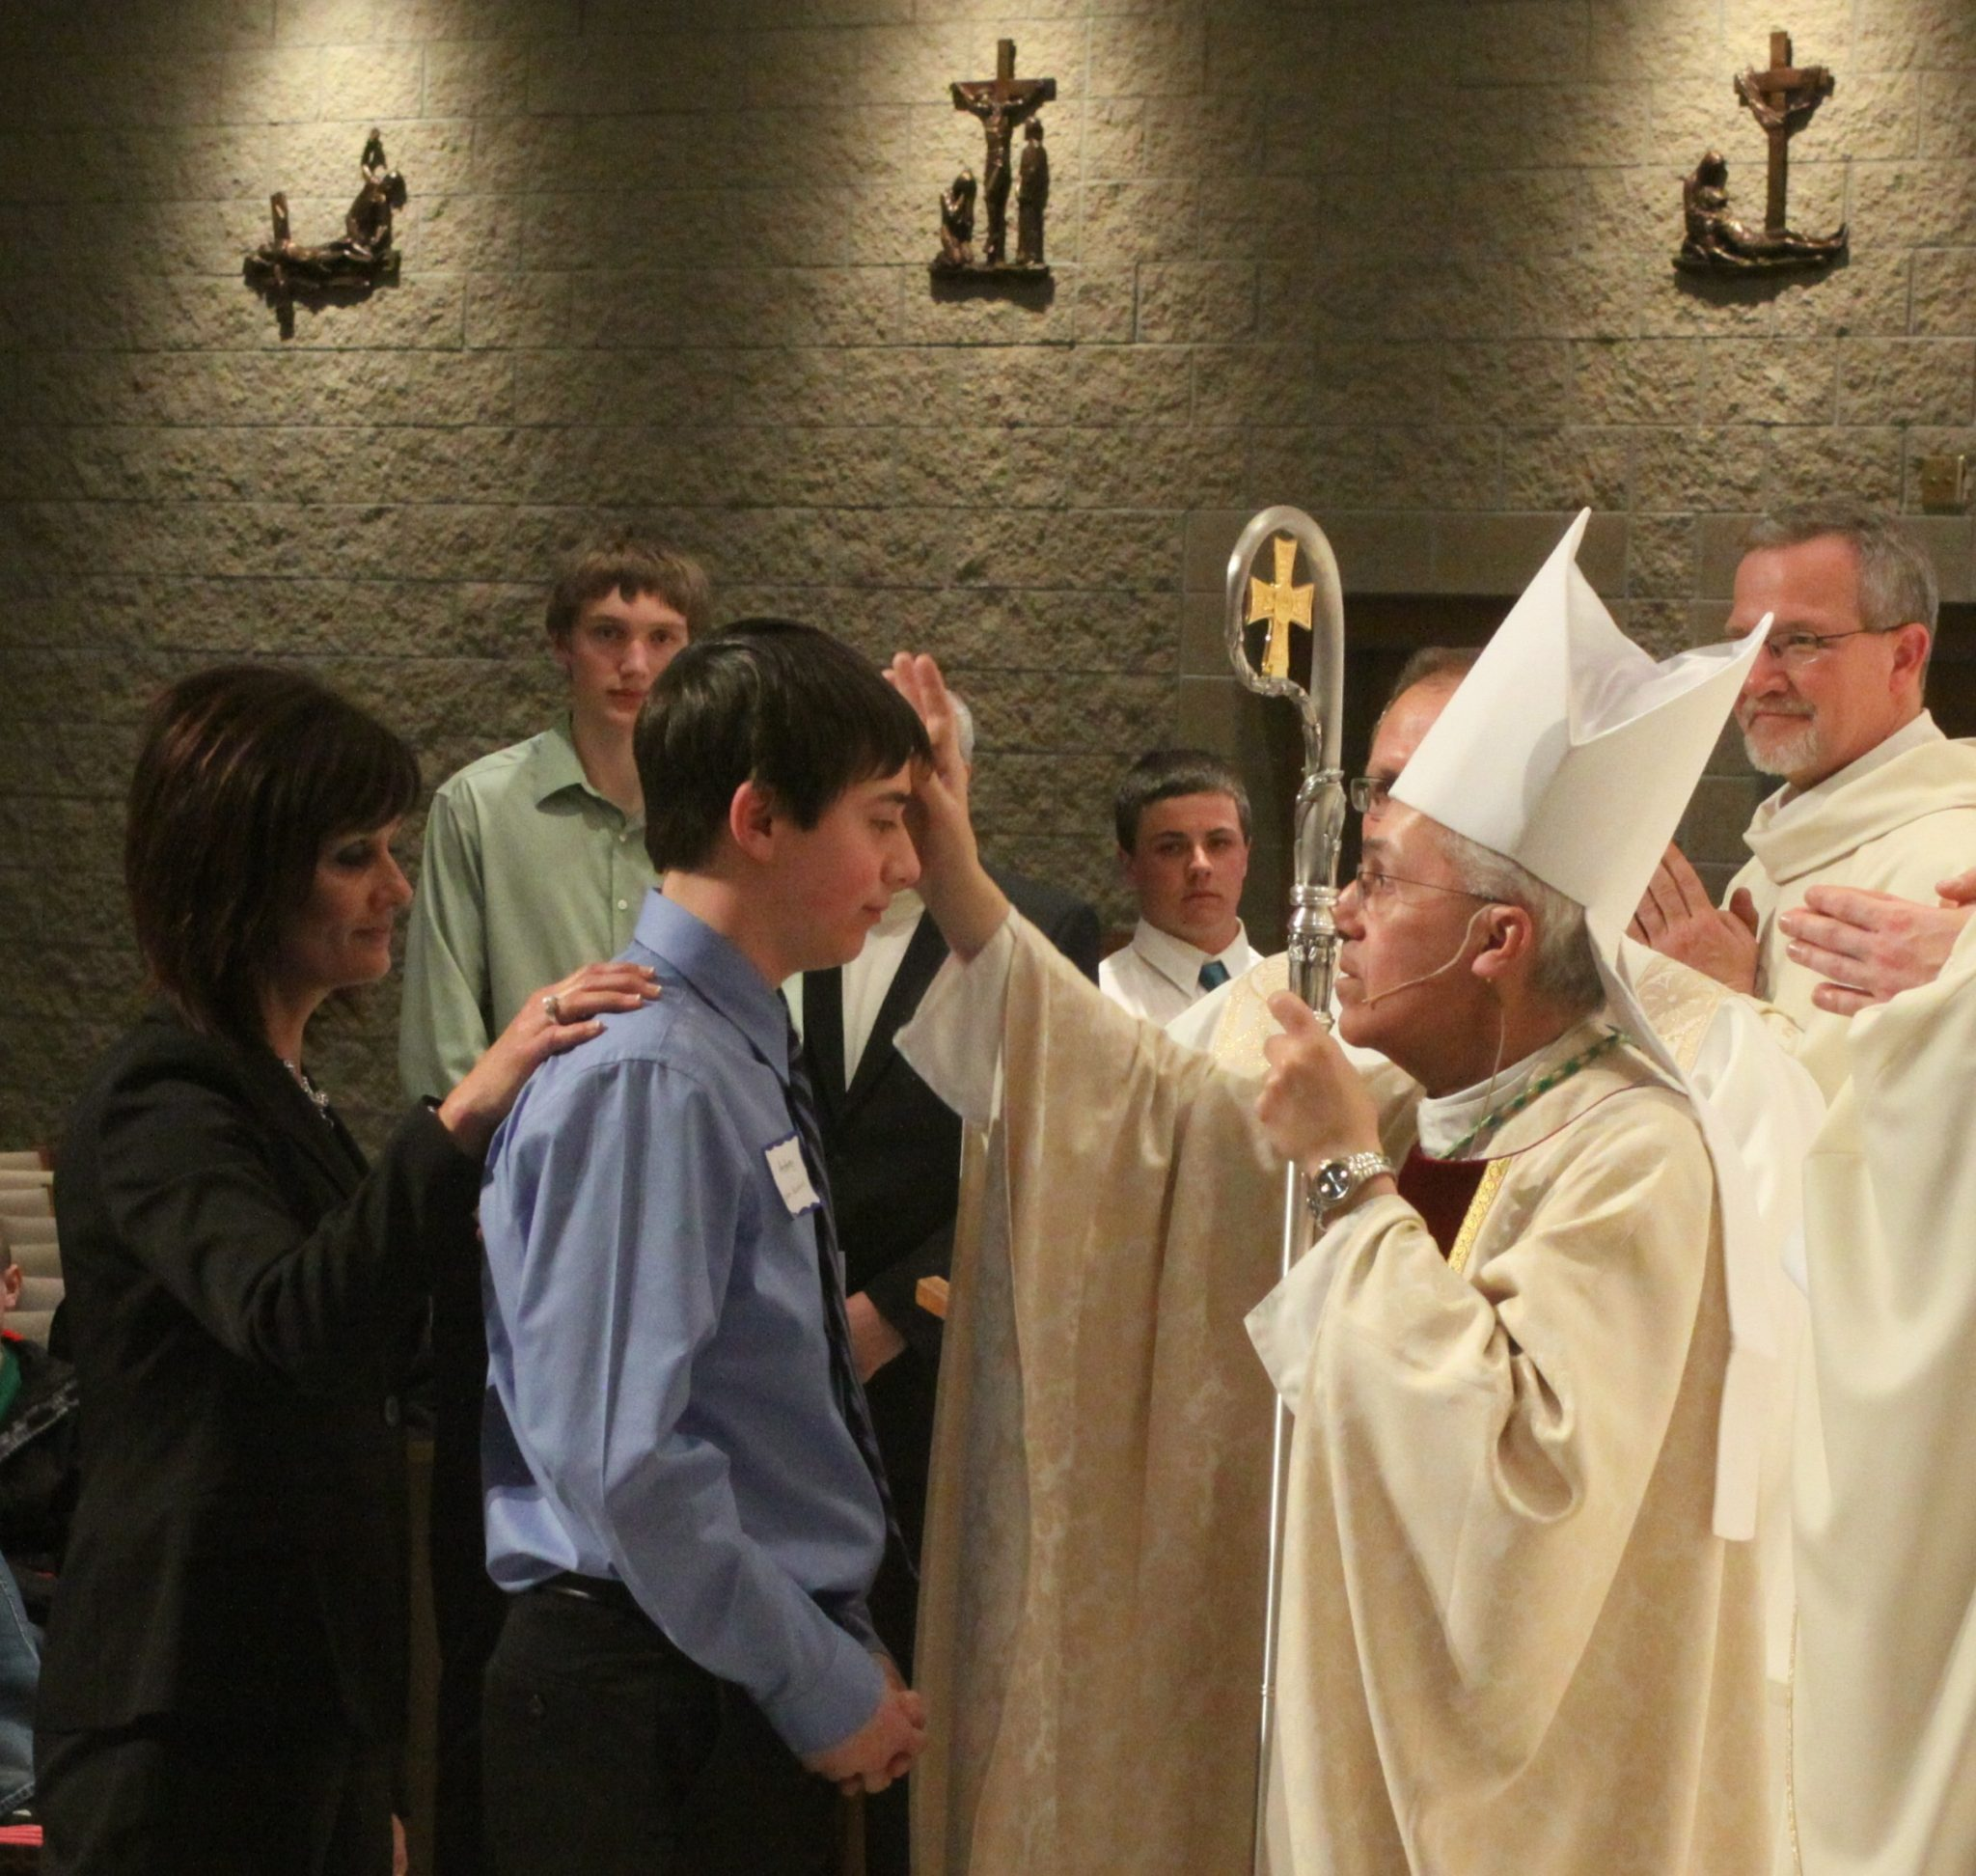 Wexford priest to ban non-Mass-goers from Confirmation?